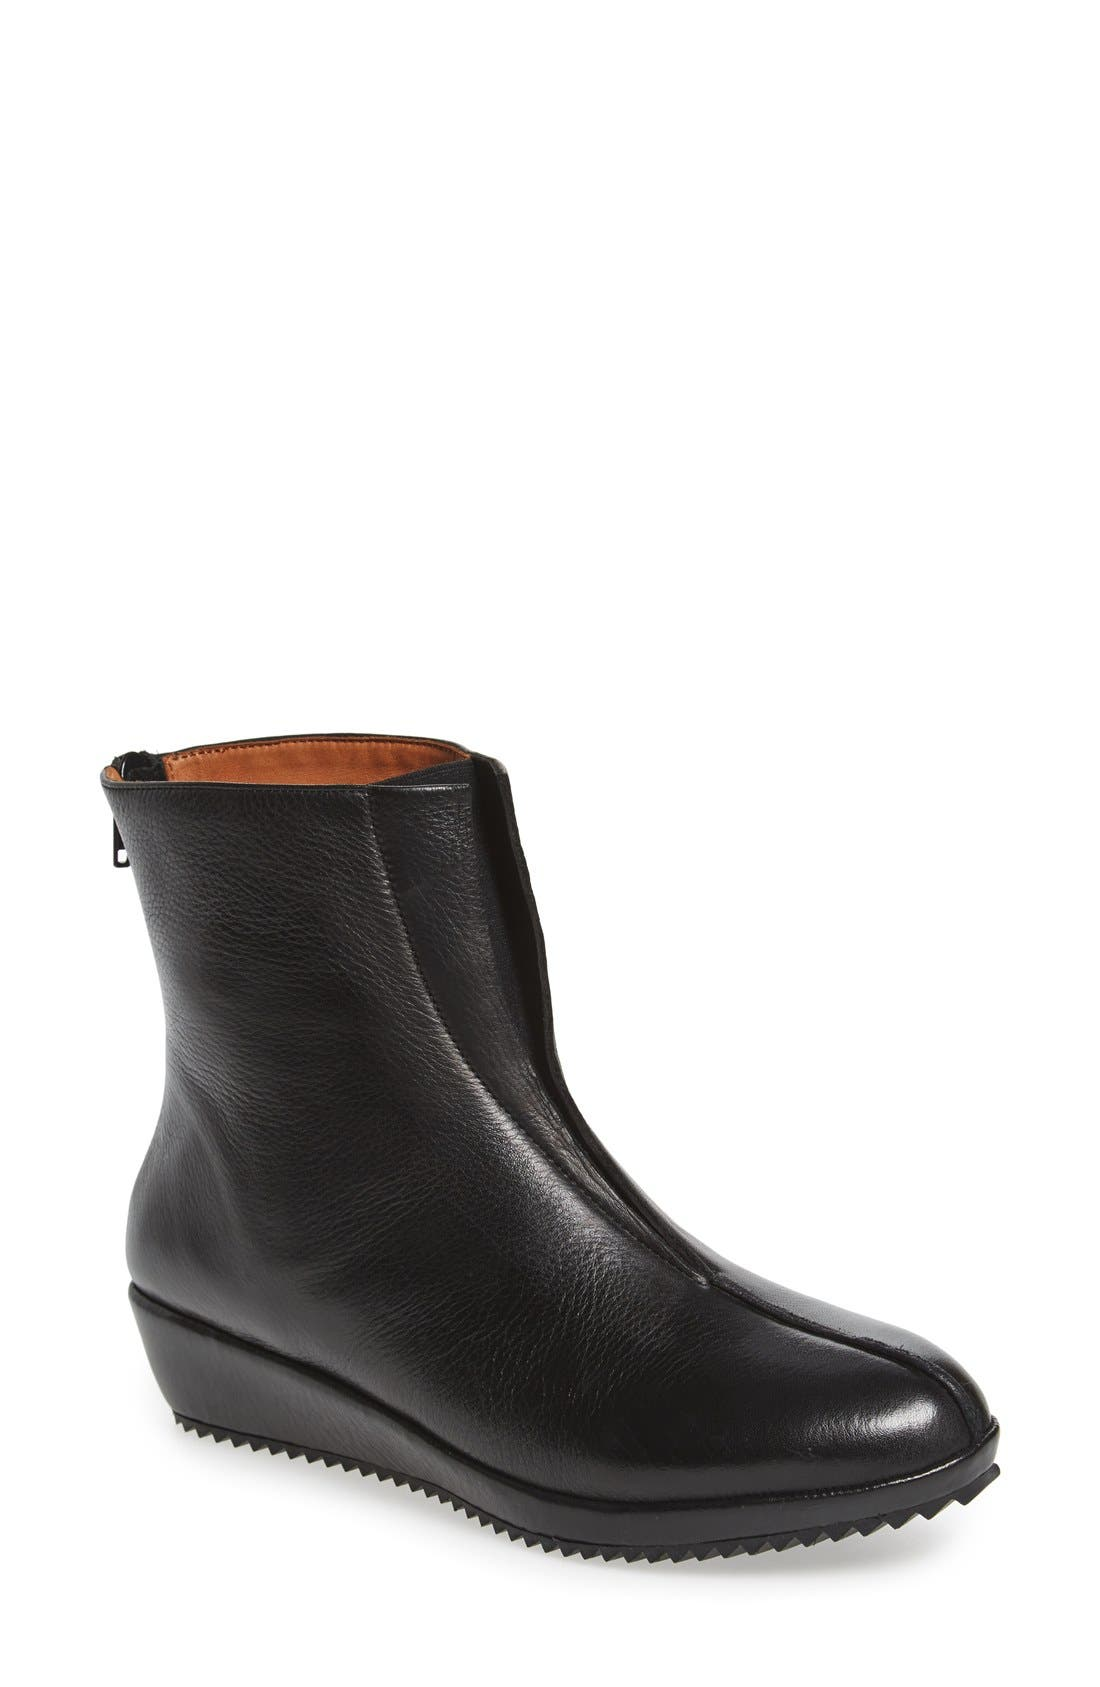 Alternate Image 1 Selected - L'Amour des Pieds 'Berneen' Wedge Bootie (Women)